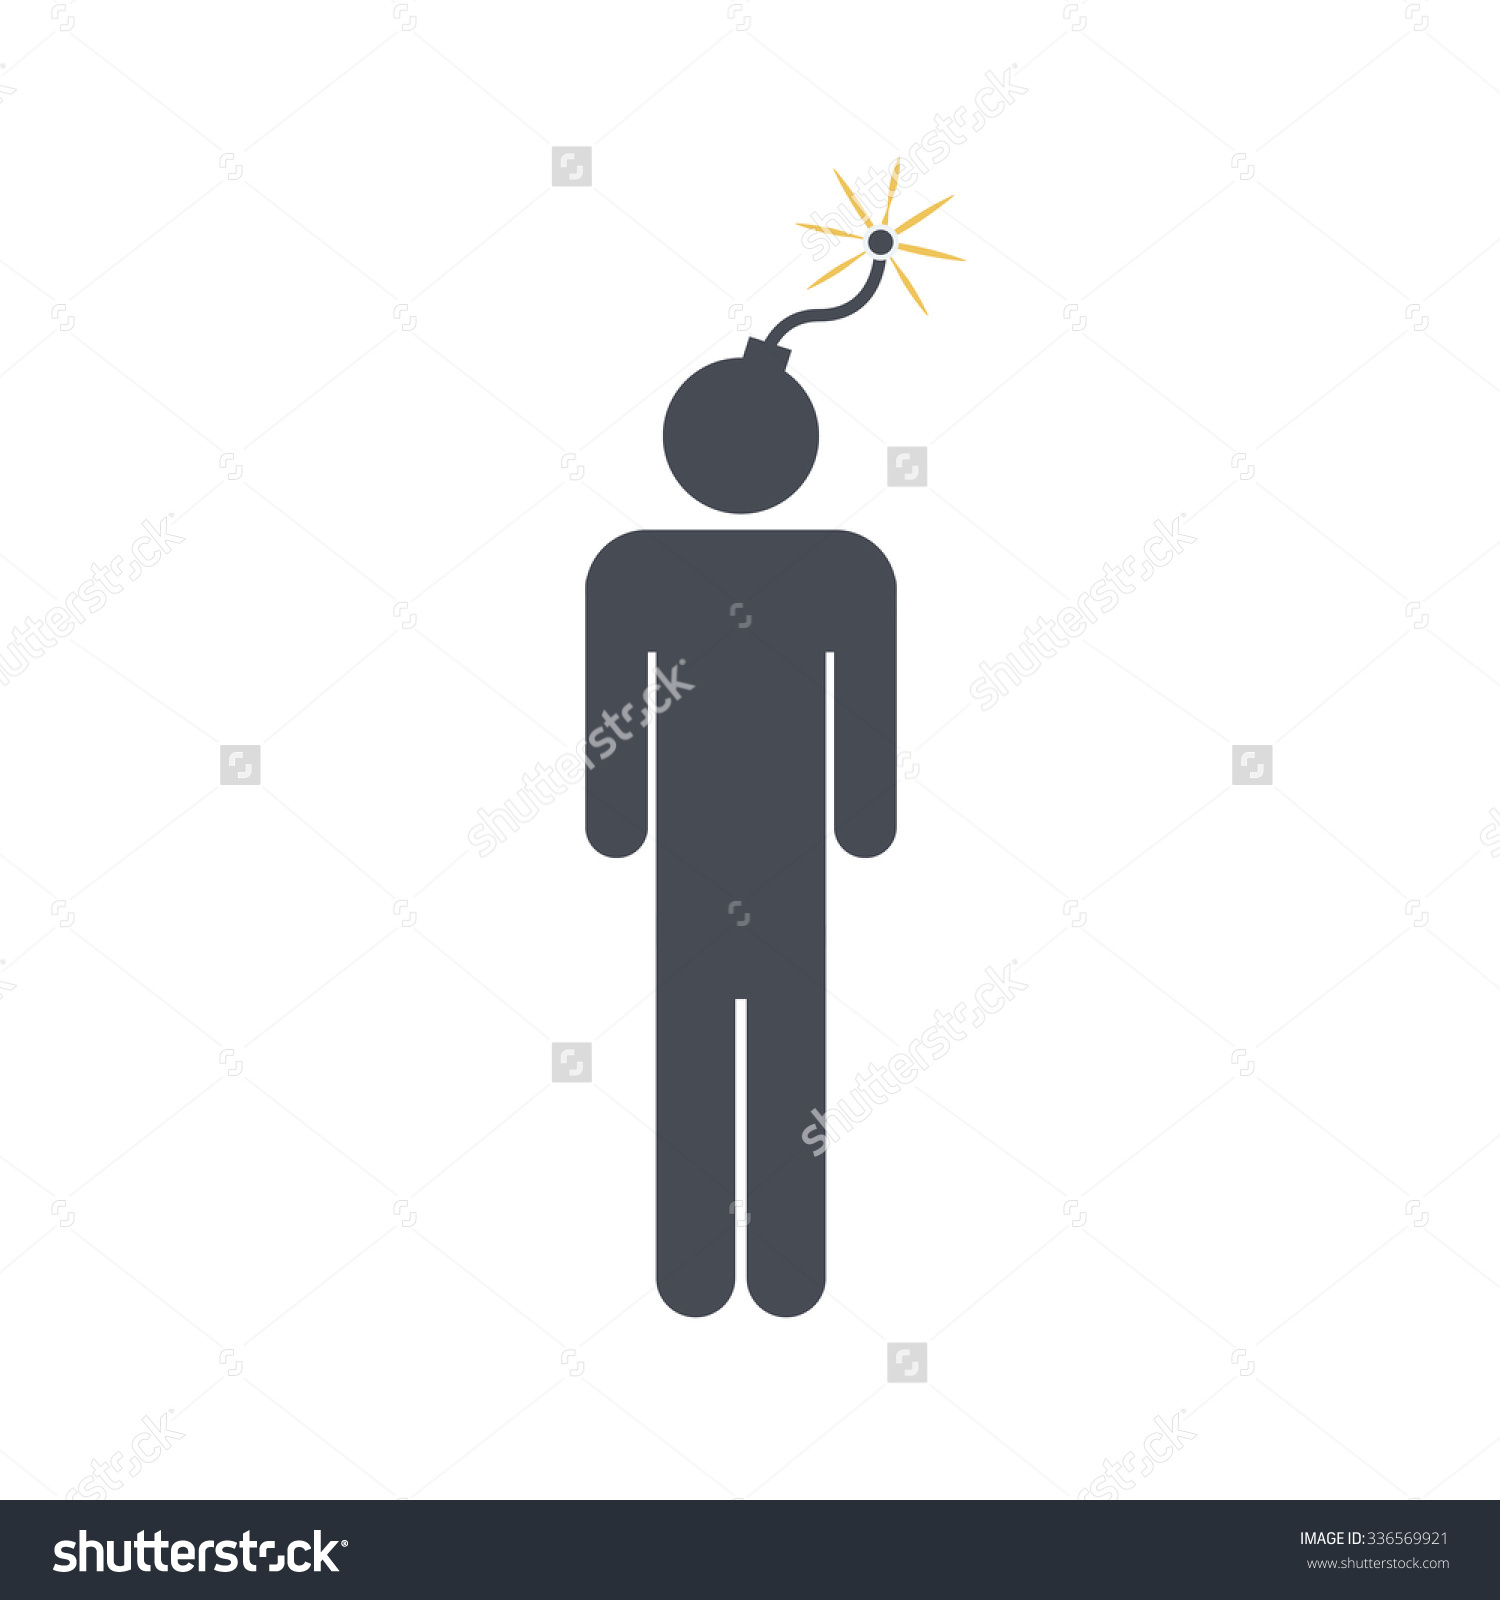 stock-vector-terrorist-icon-stick-figure-with-a-bomb-as-a-head-336569921.jpg